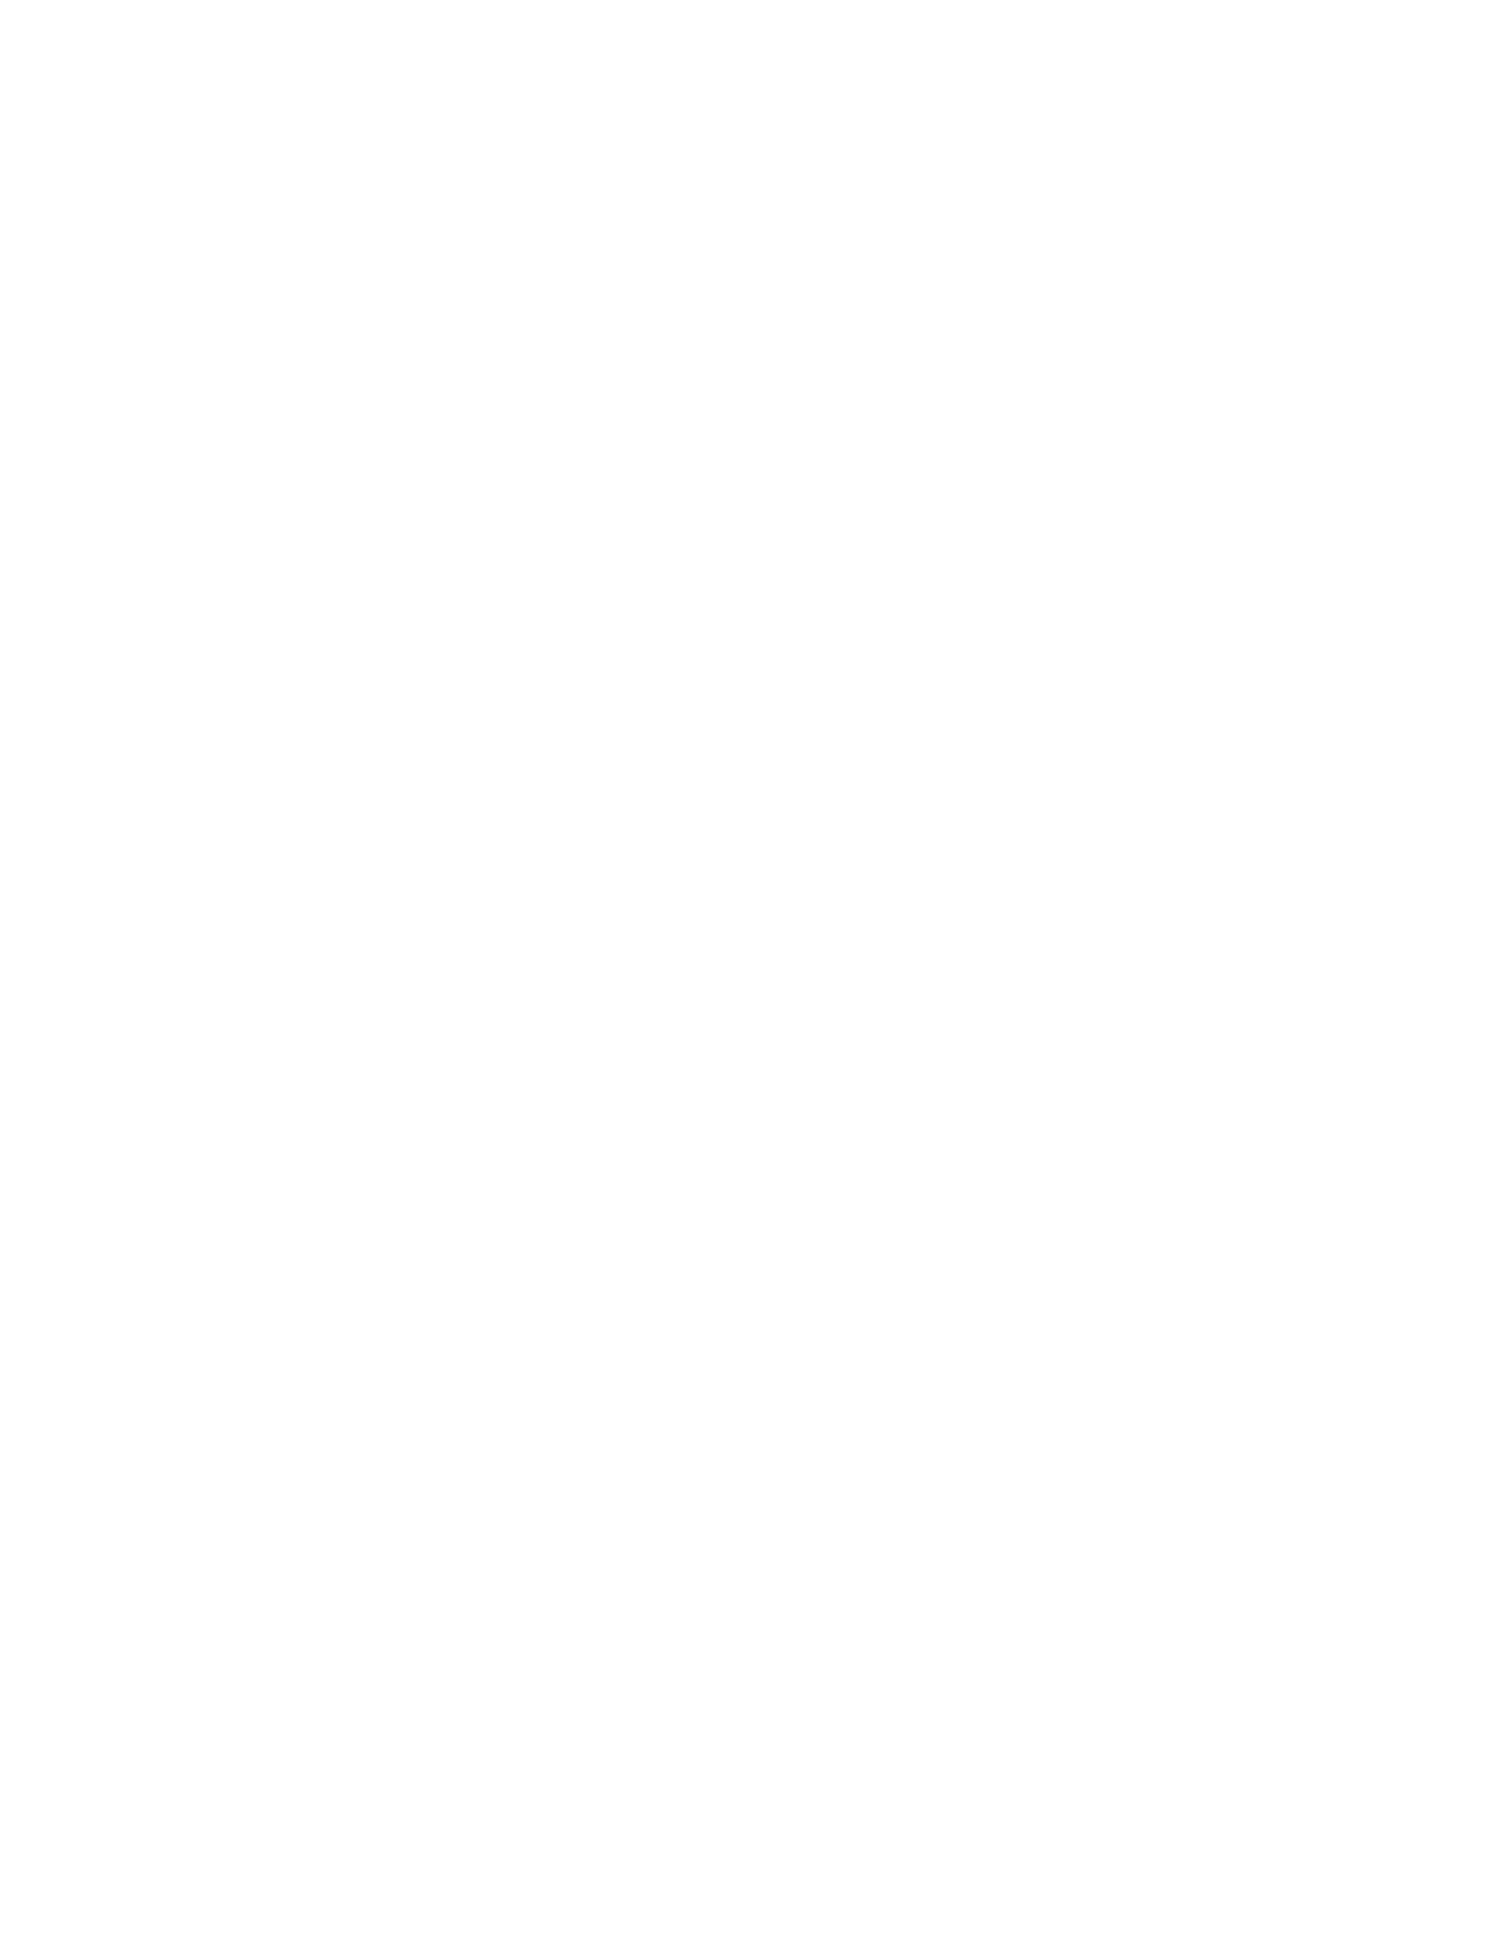 Edward Campbell Studio Inc.